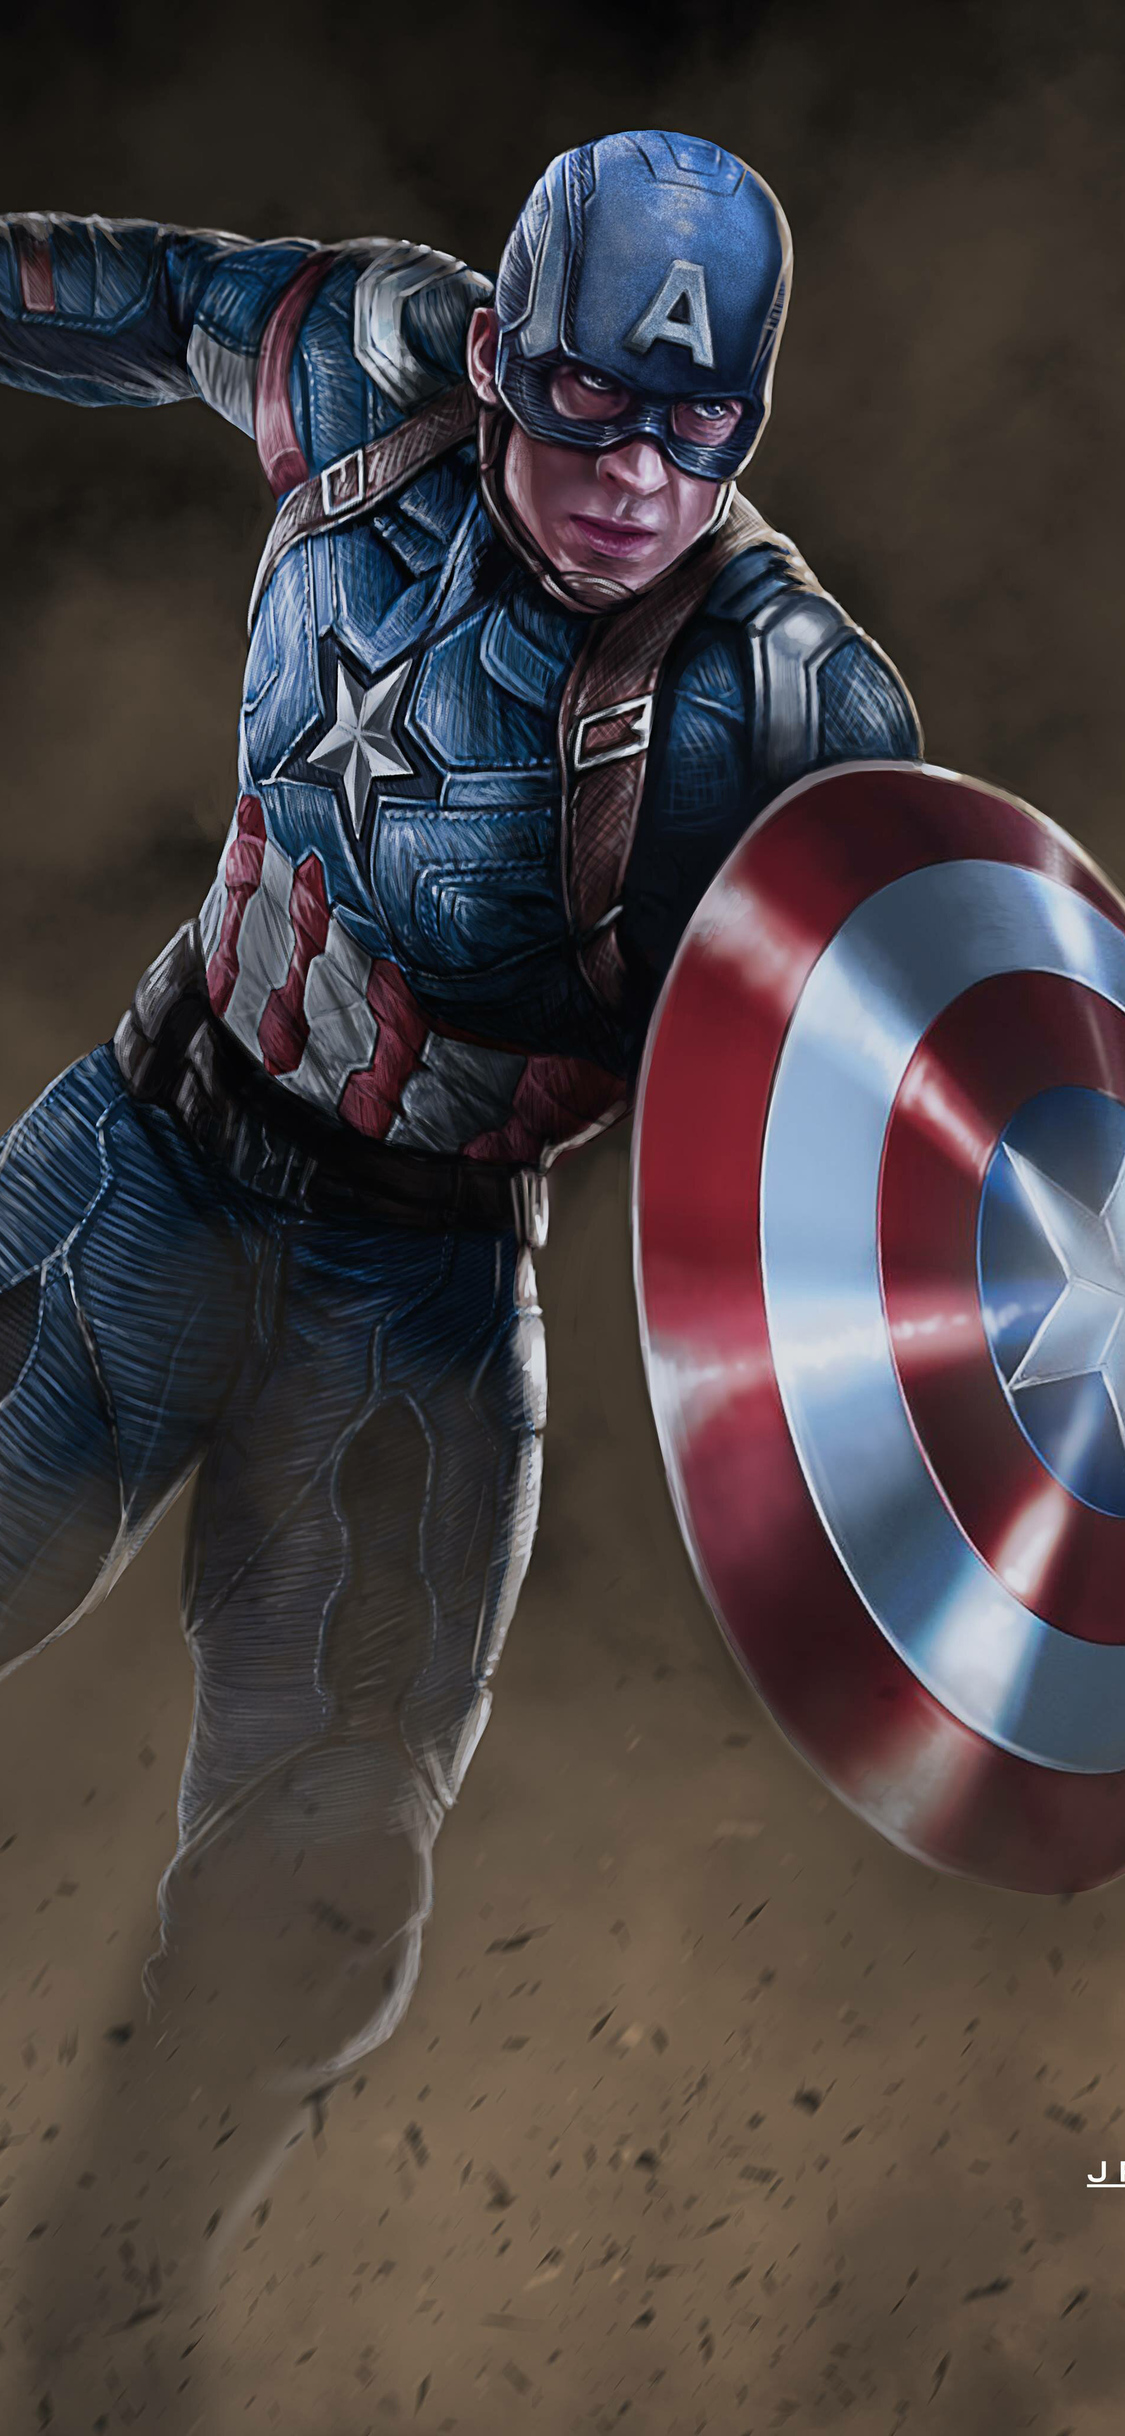 Iphone X Captain America Wallpaper The Best Hd Wallpaper